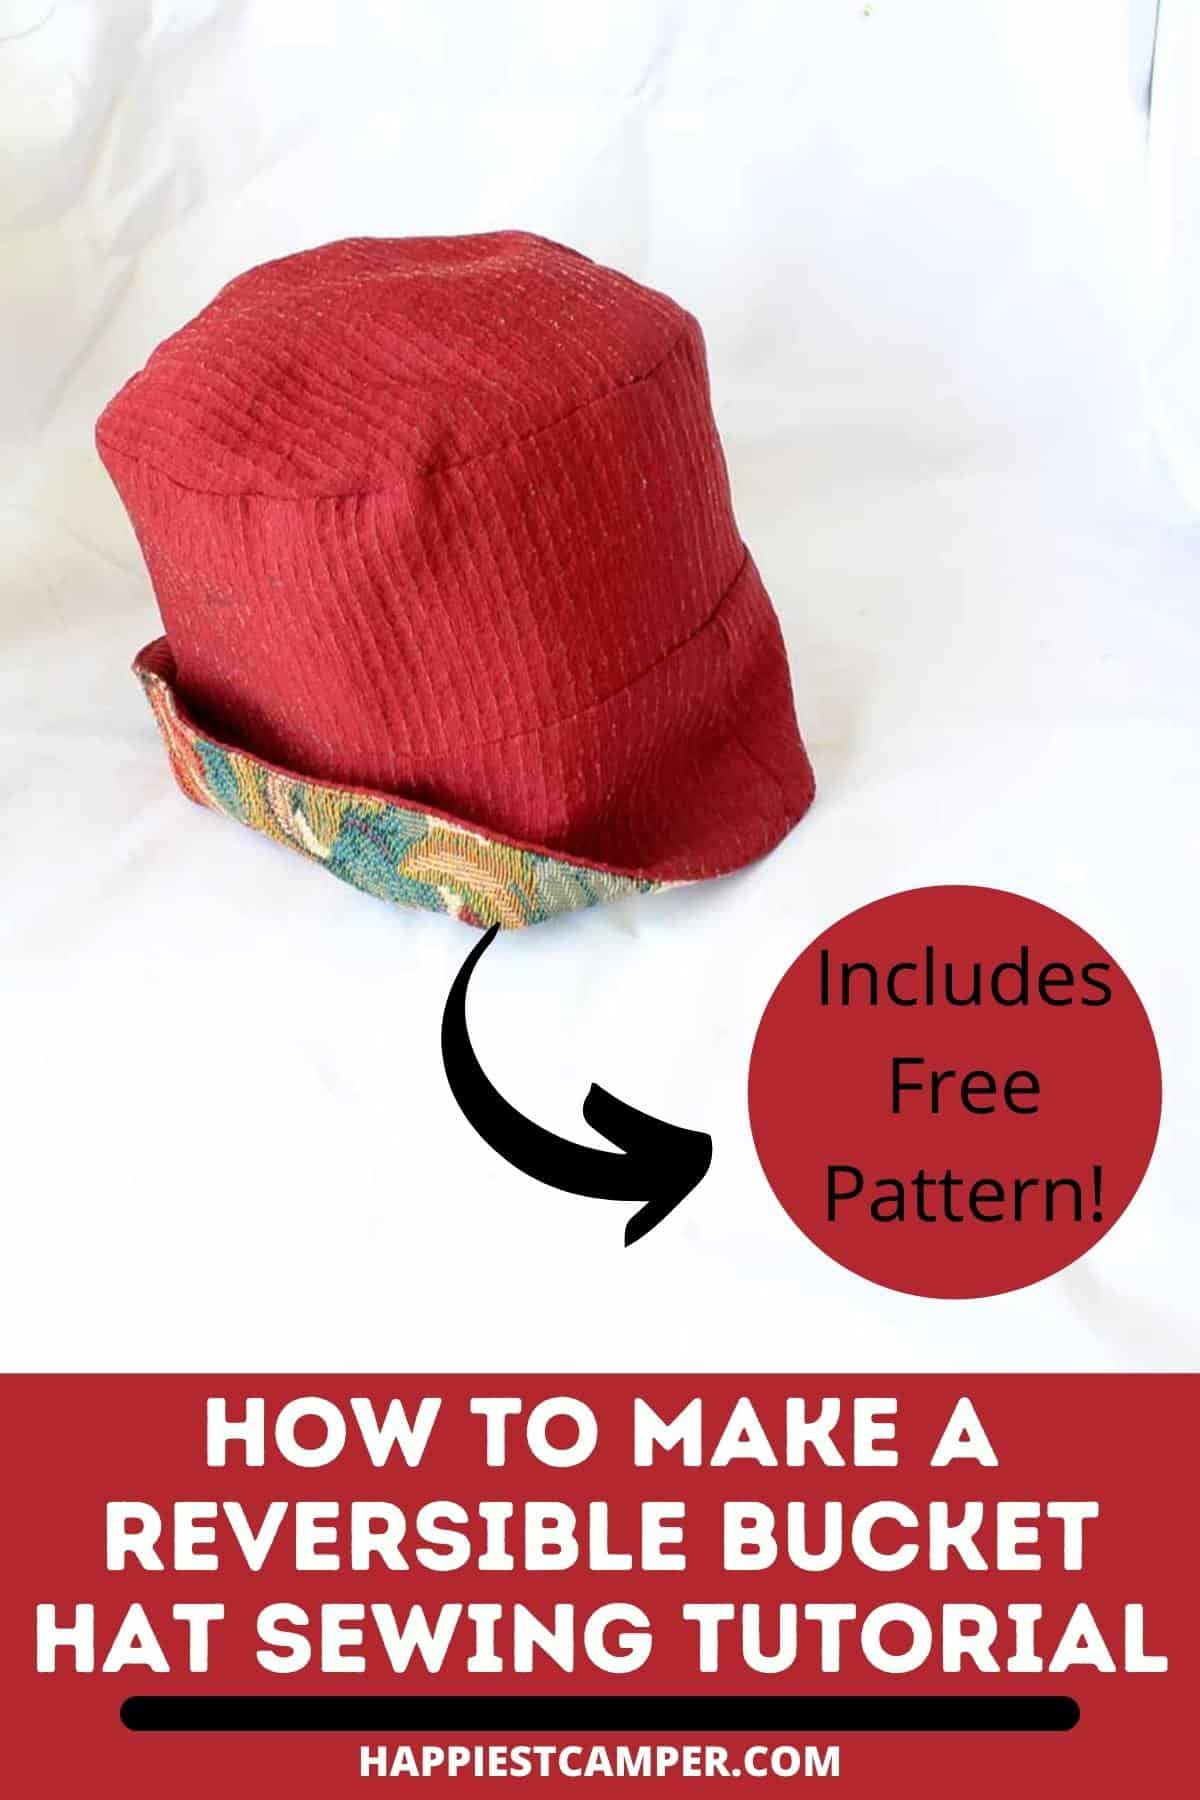 How To Make A Reversible Bucket Hat Sewing Tutorial